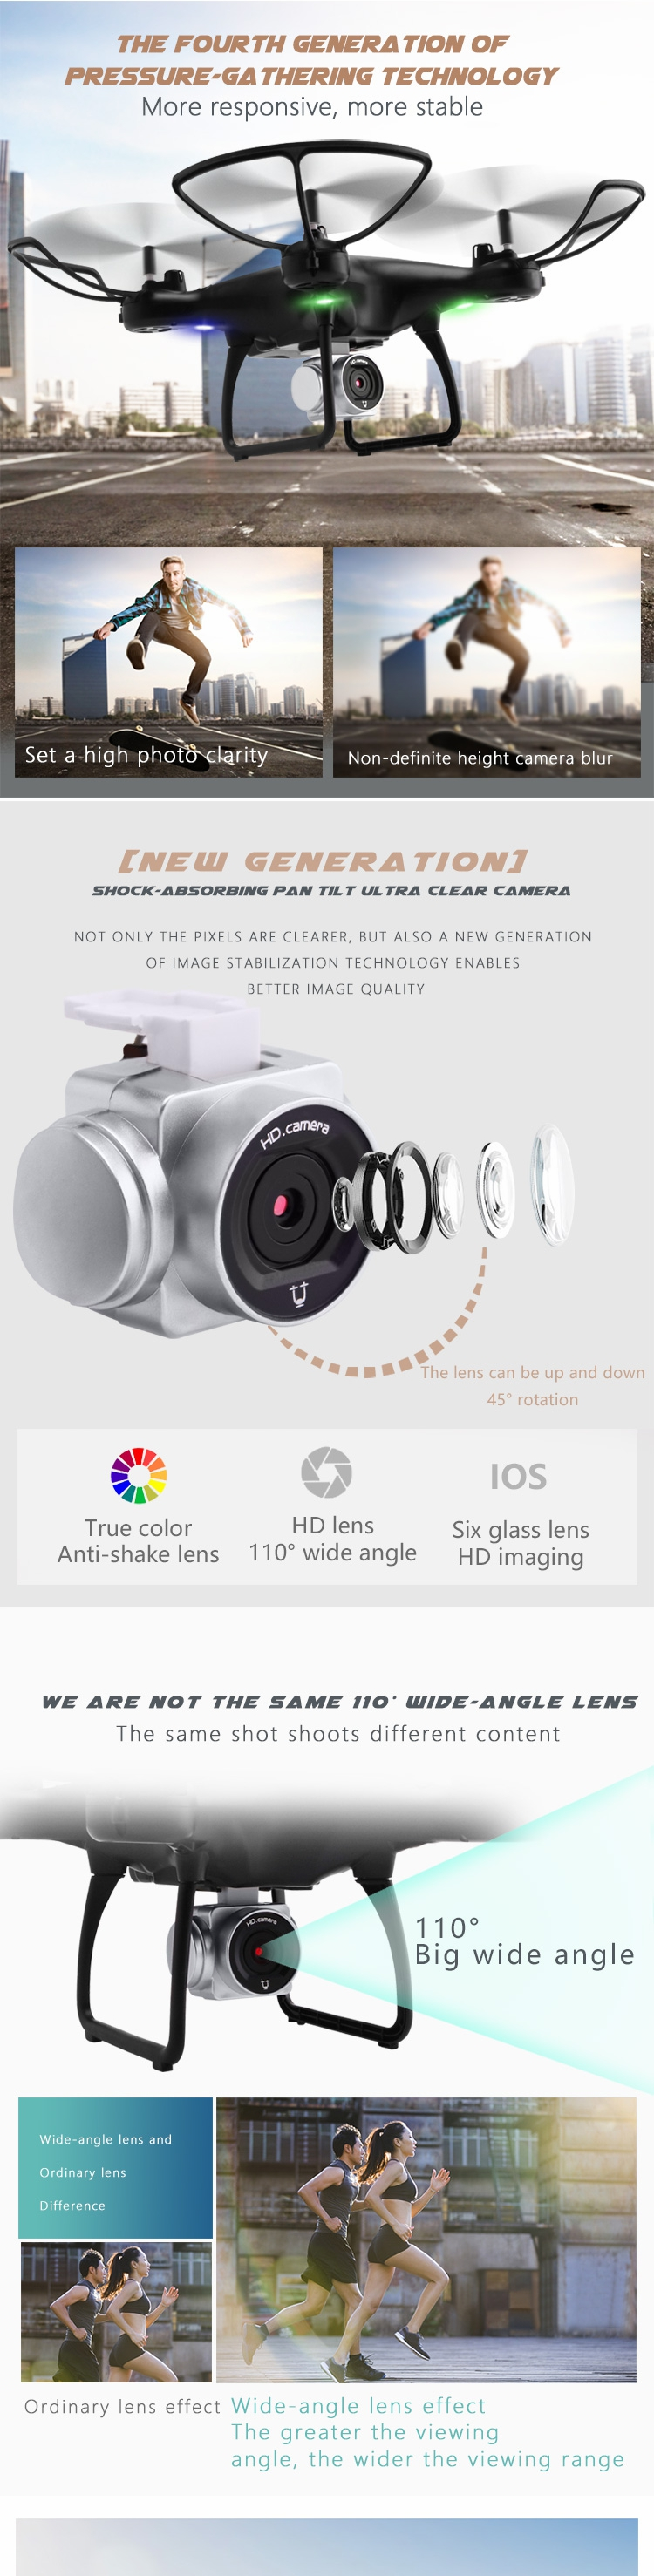 Utoghter 69701 Wifi FPV RC Drone Quadcopter with 0.3MP/2MP Gimbal Camera 22mins Flight Time - Photo: 2